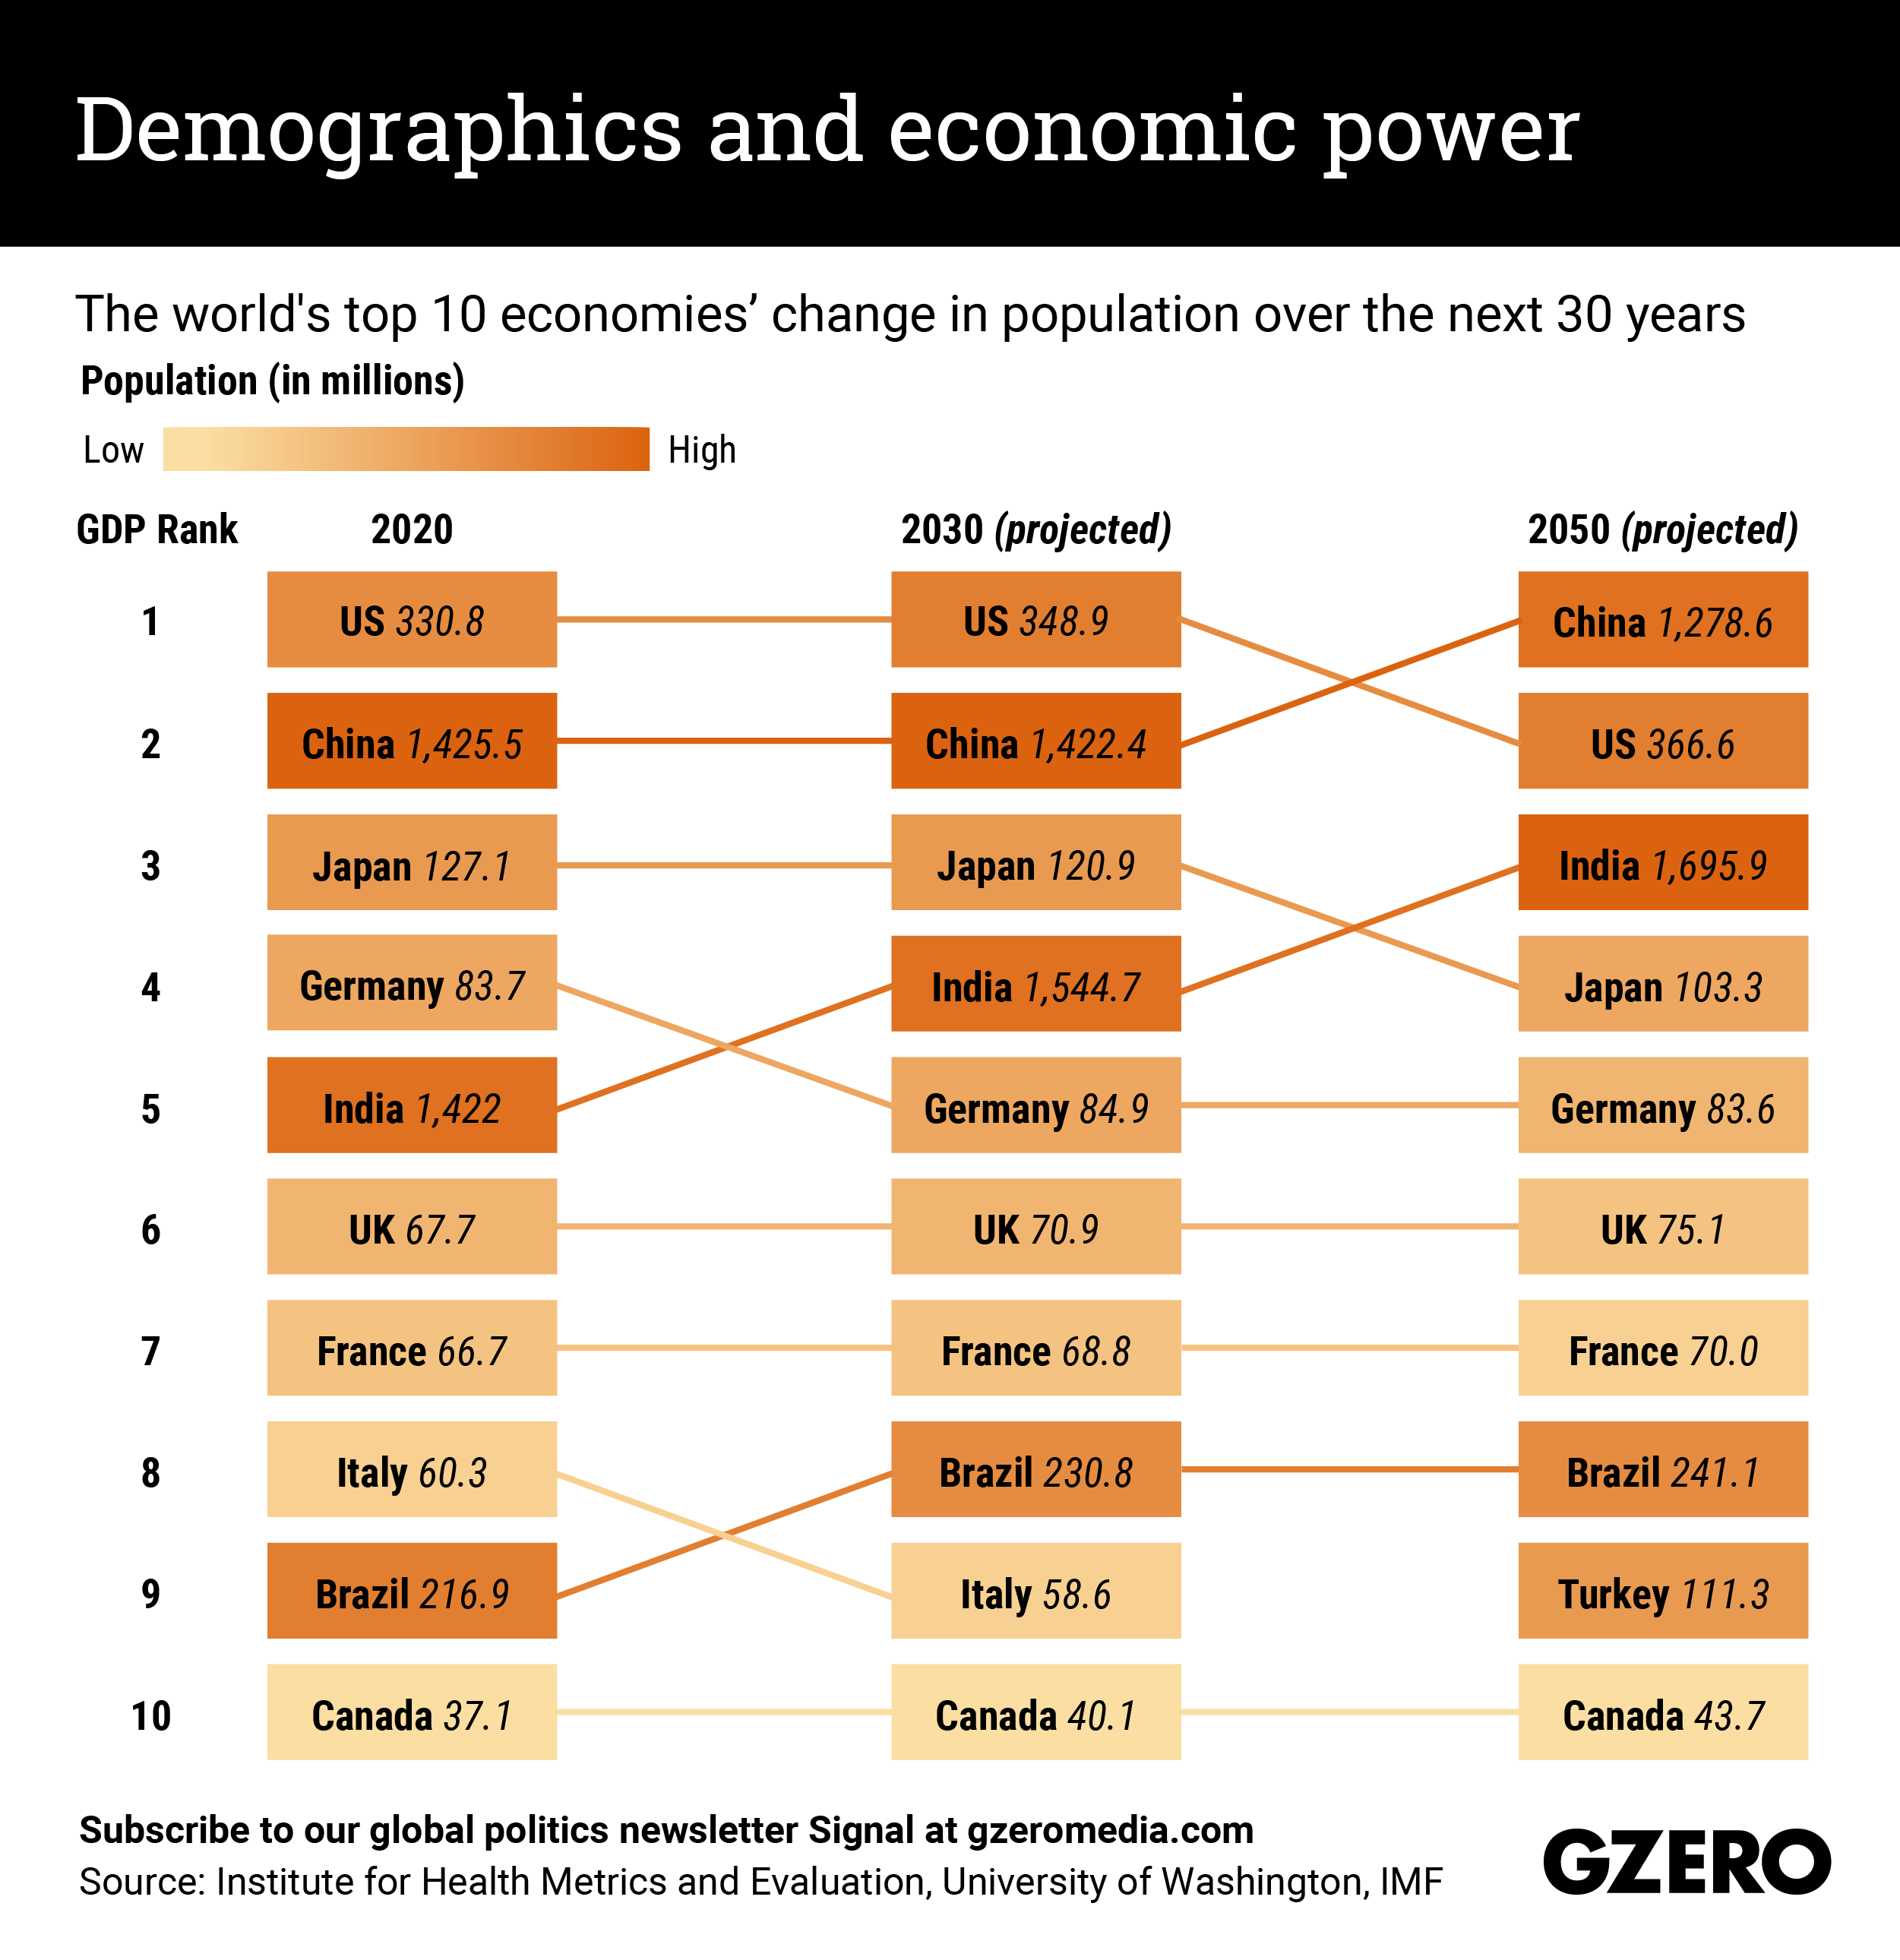 The Graphic Truth: Demographics and economic power